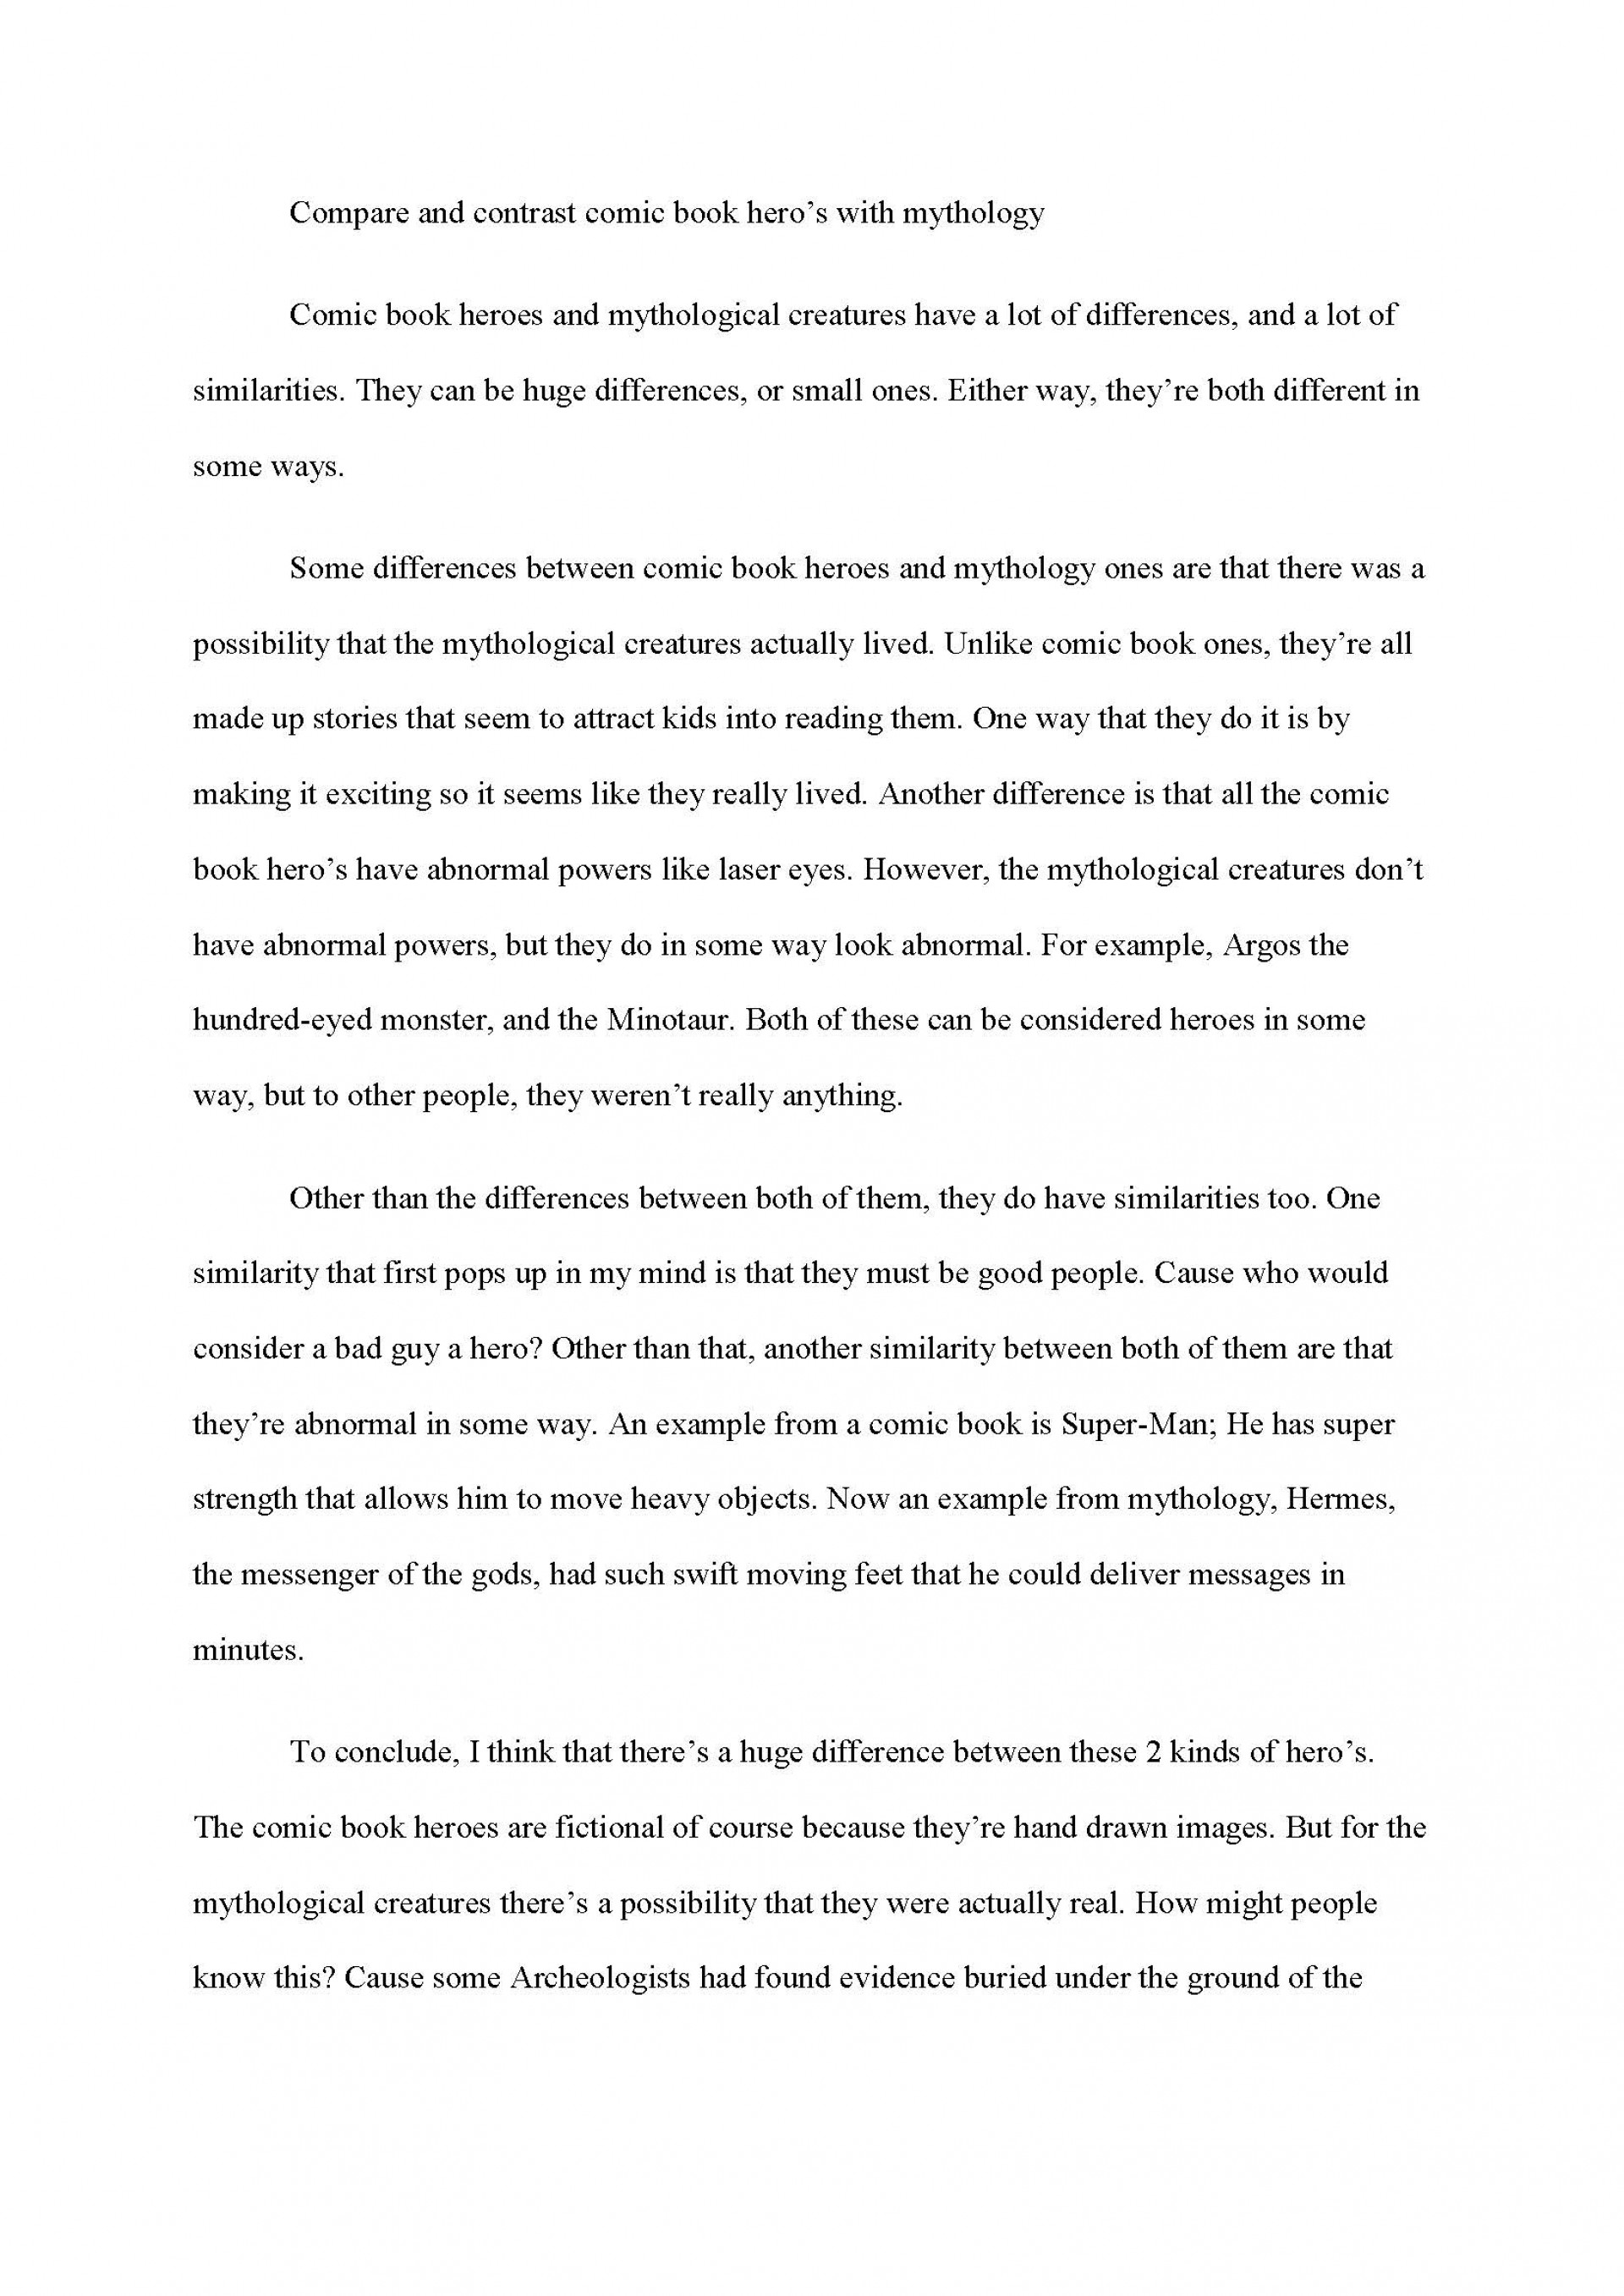 006 Compare And Contrast Essay Conclusion Example Staggering High School College Introduction Vs. 1920